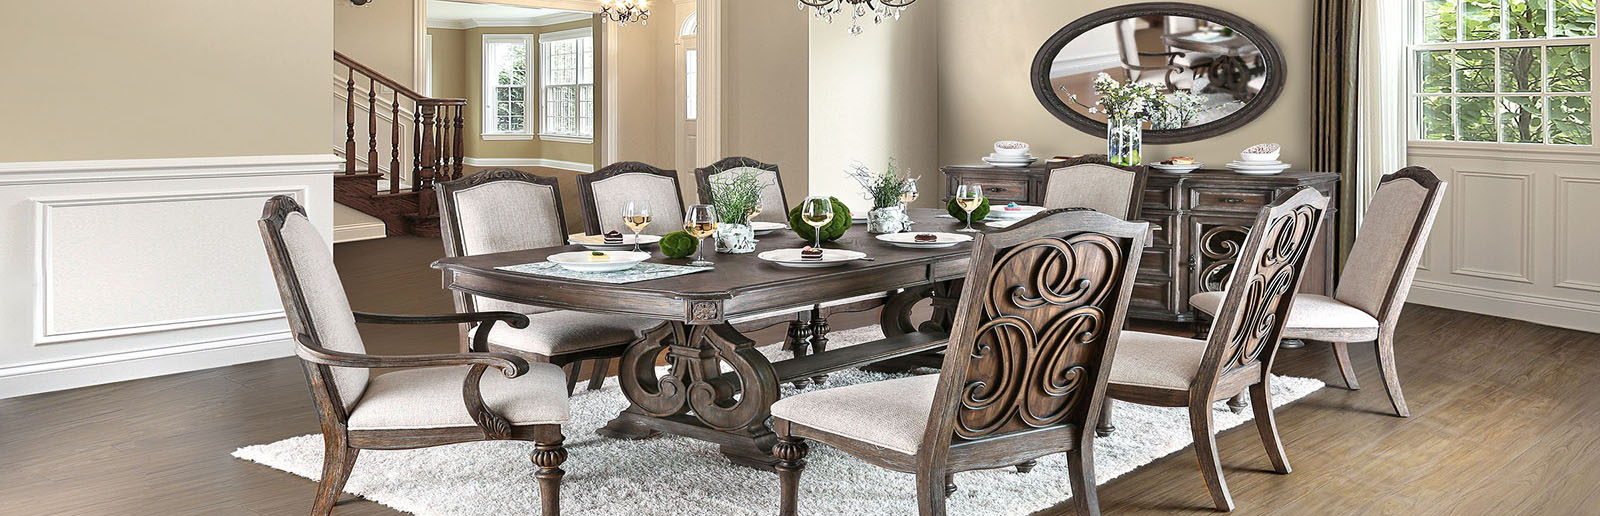 Formal Trestle Table with Chairs